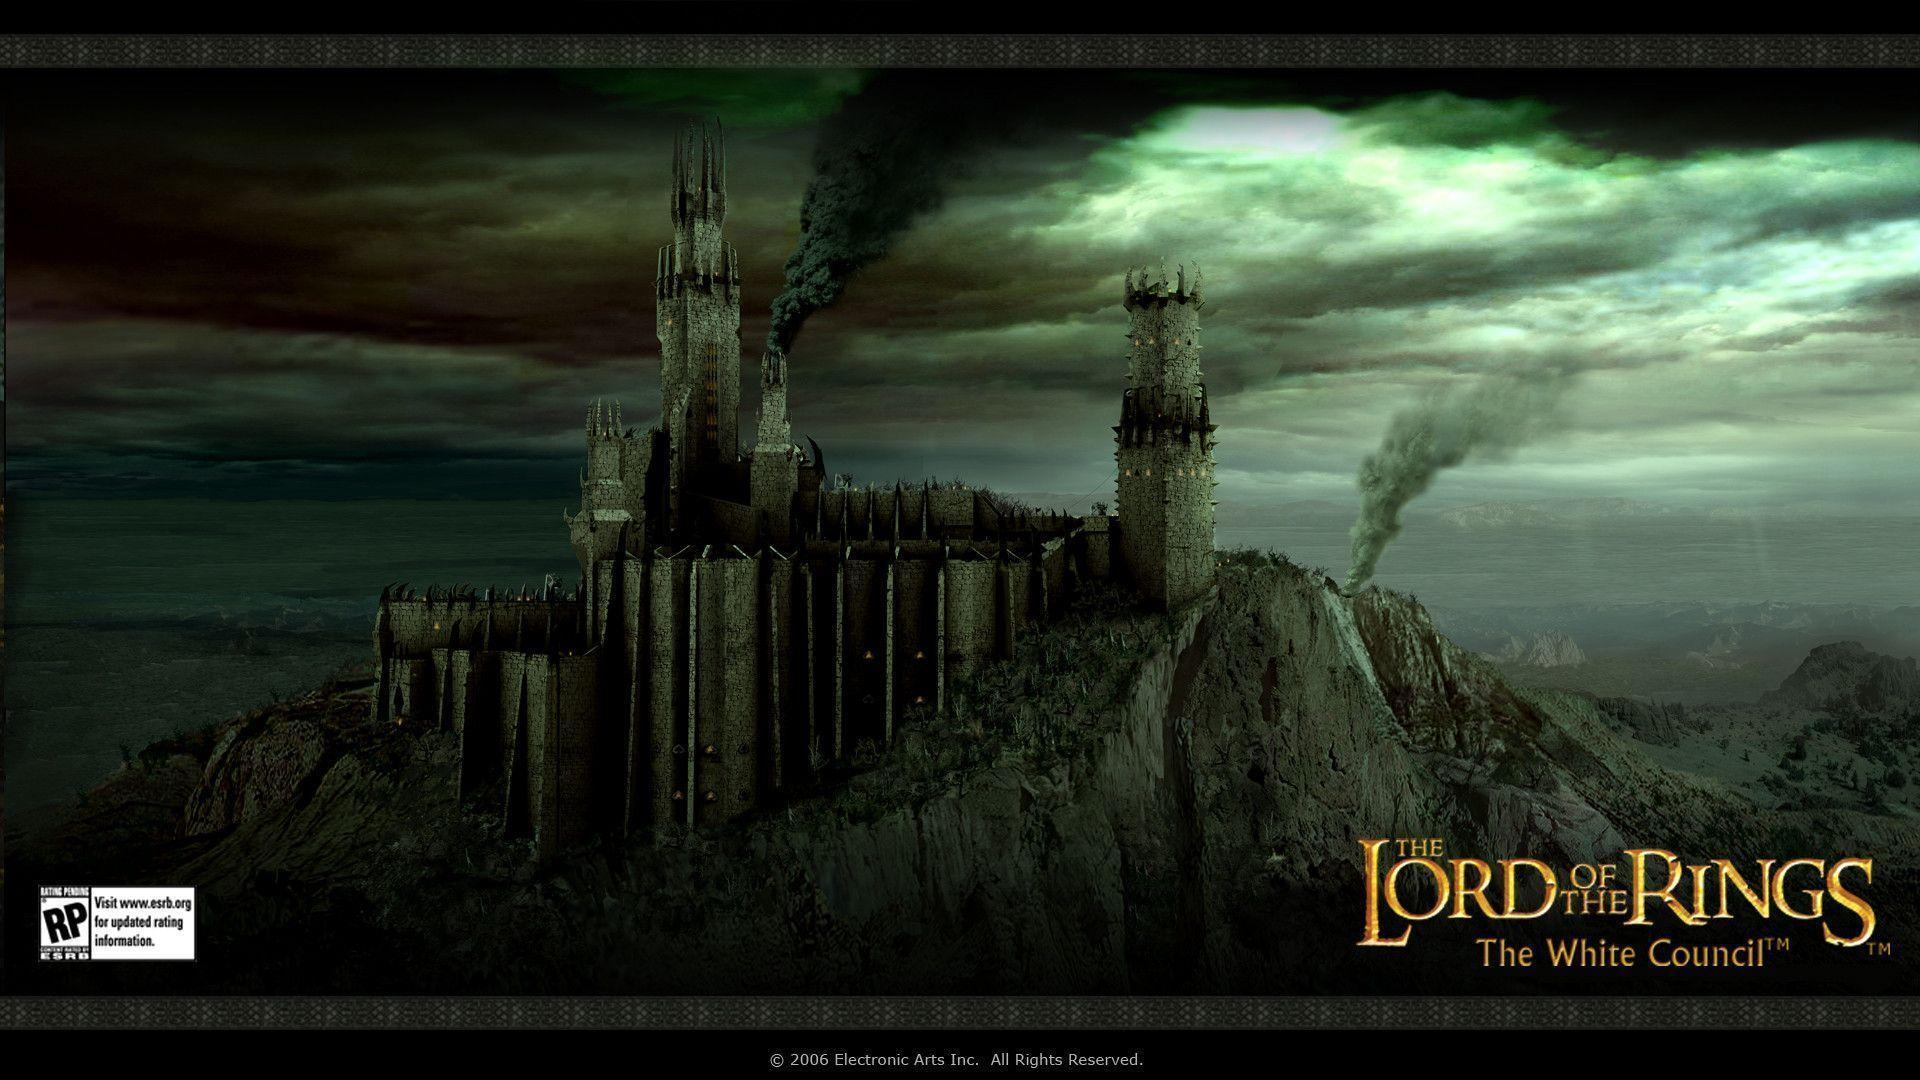 lotr wallpaper hd - photo #8